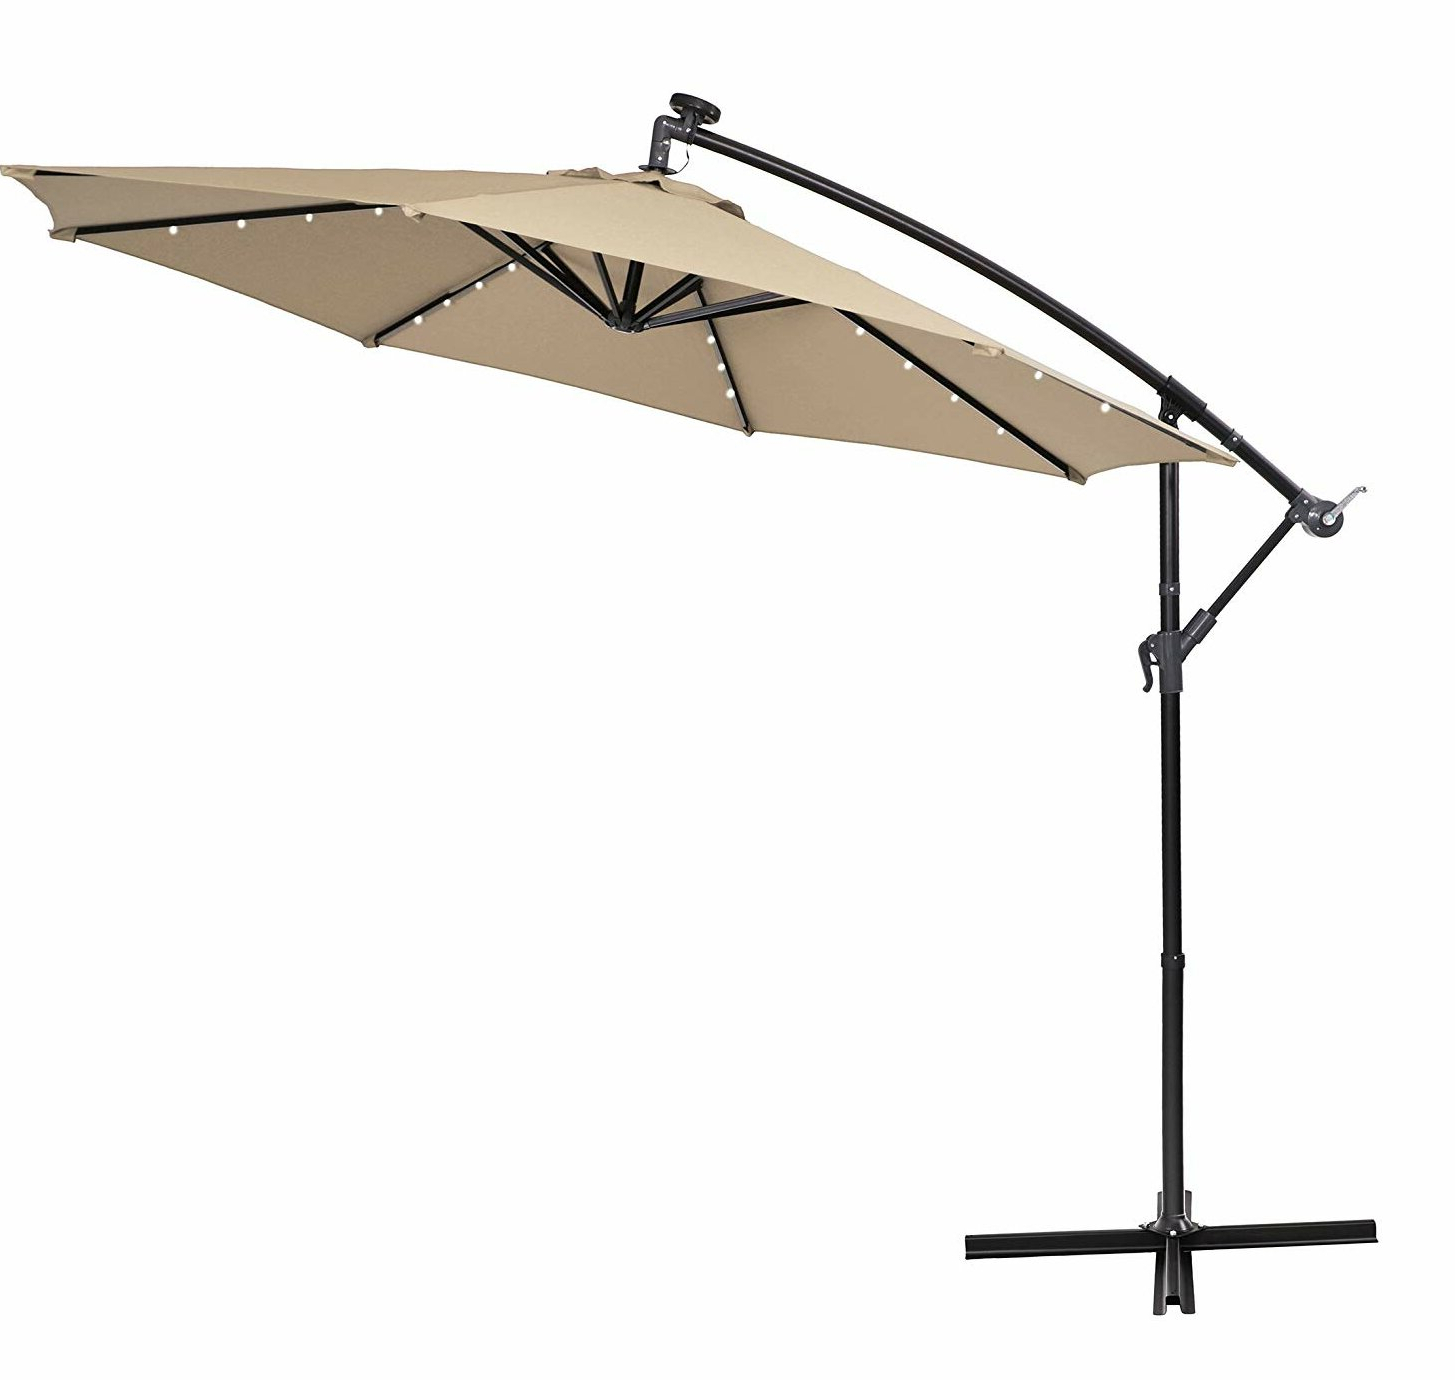 Newest Bostic 10' Cantilever Umbrella With Bostic Cantilever Umbrellas (Gallery 1 of 20)